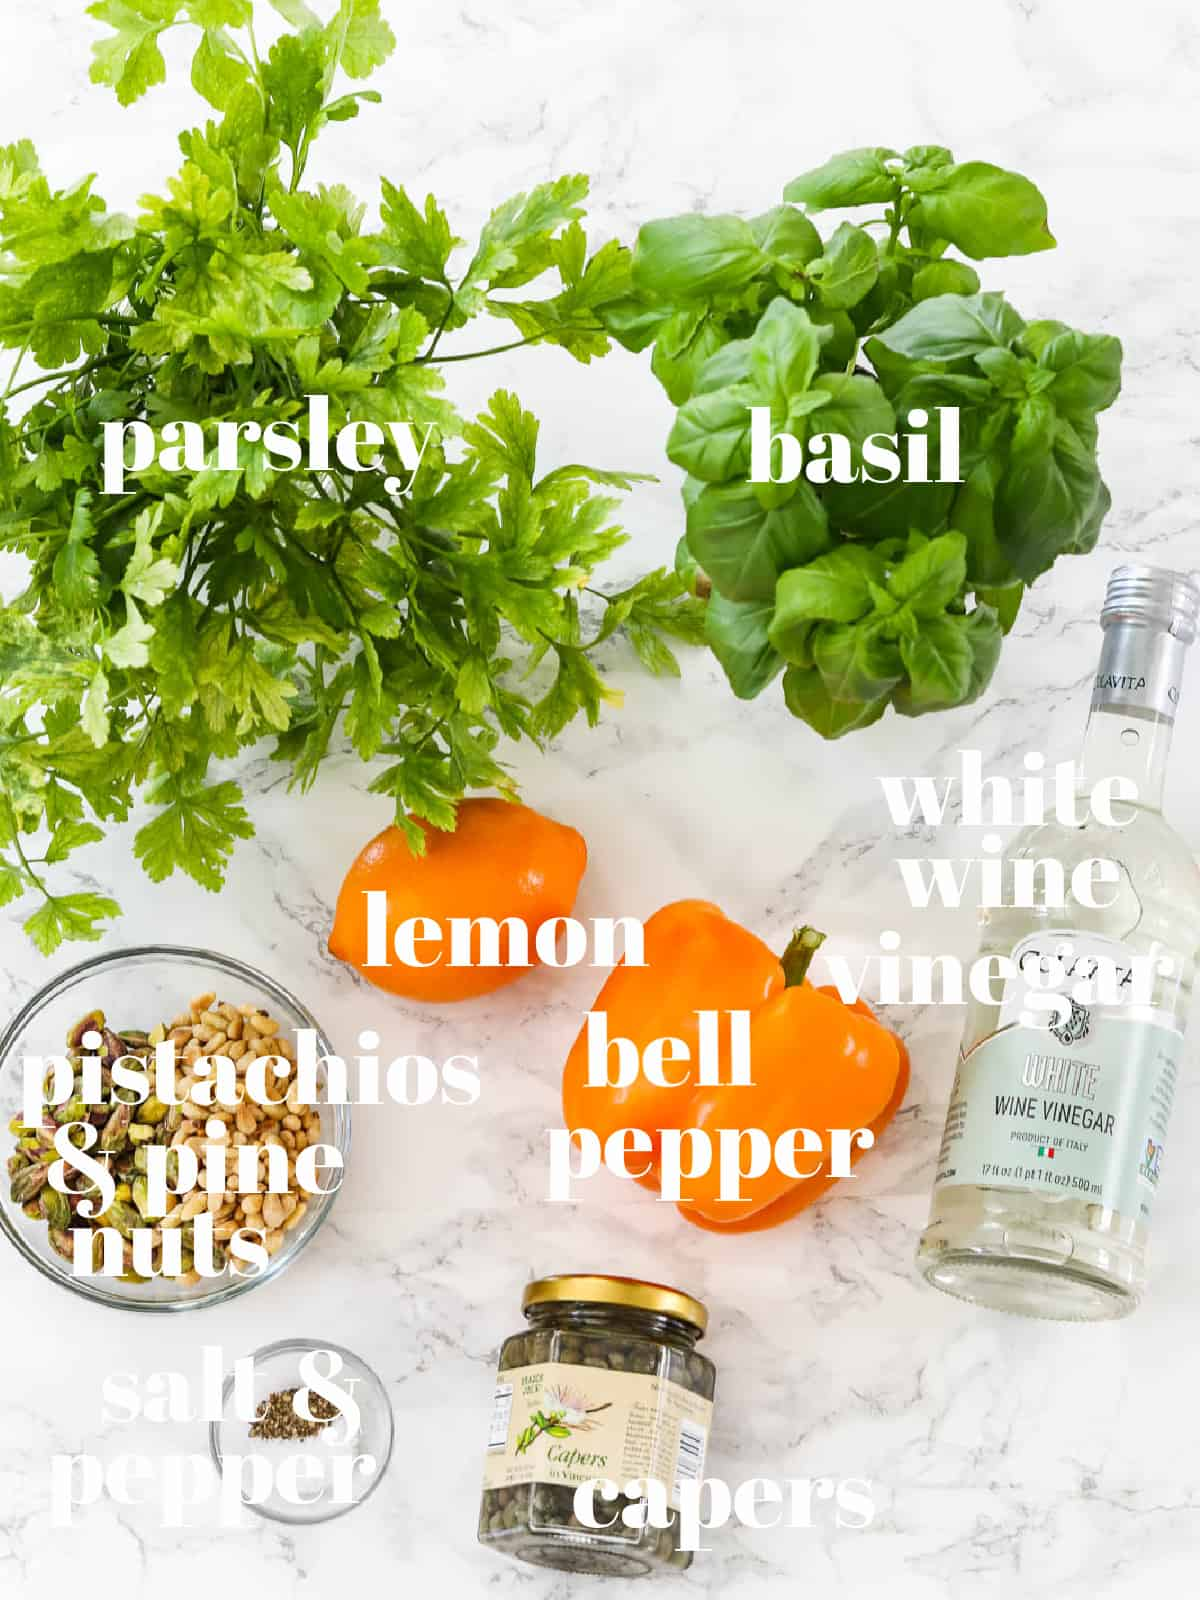 Ingredients labeled to make a gremolata recipe.